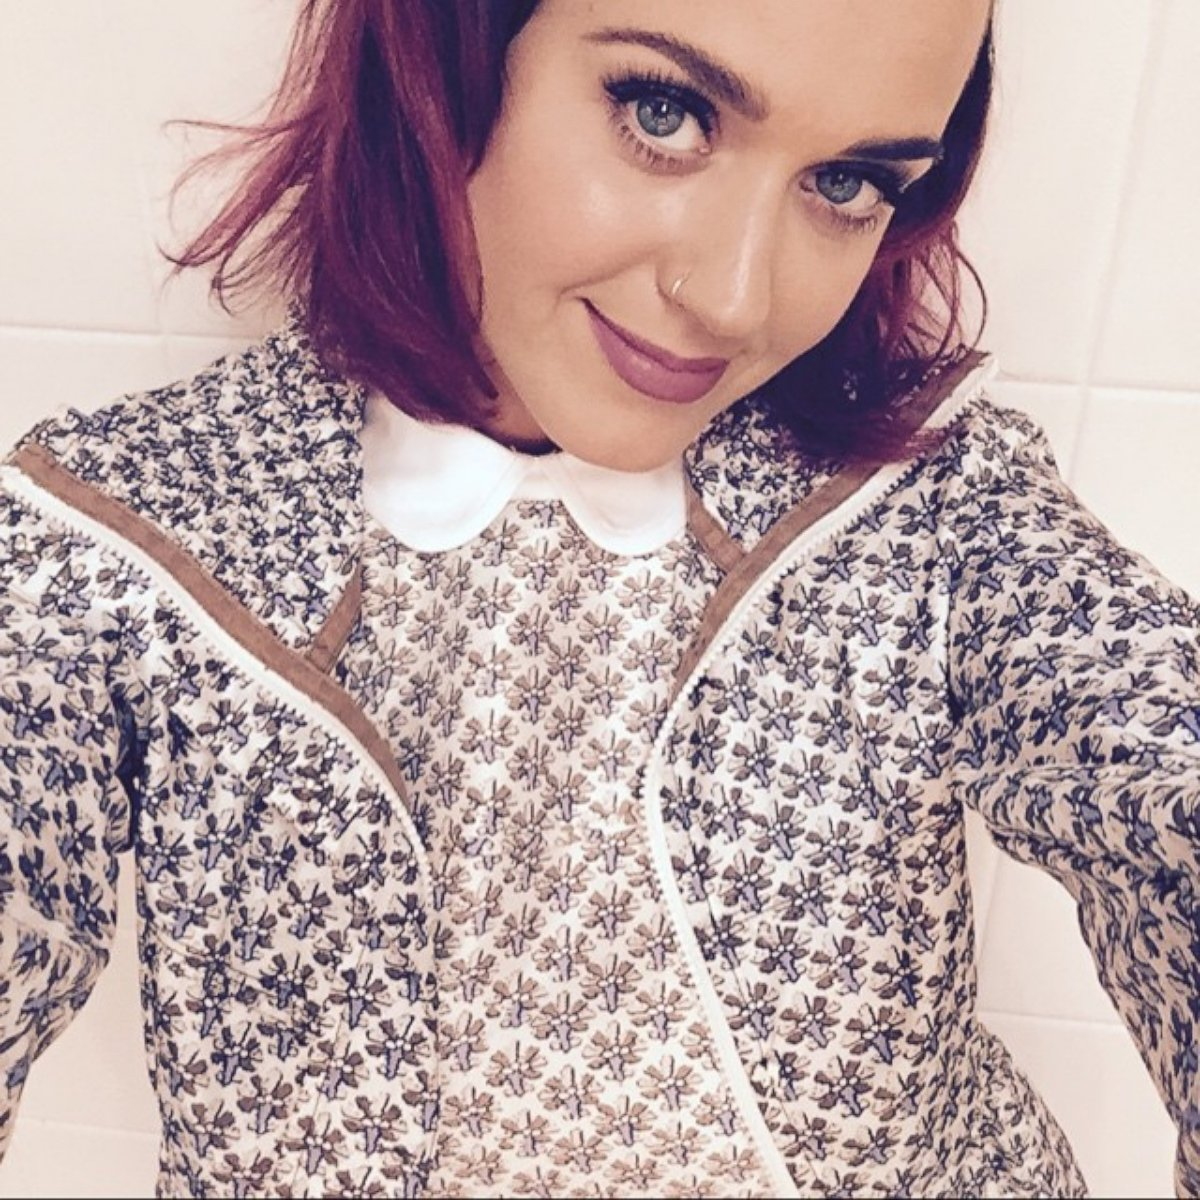 Guess What Color Katy Perrys Hair Is Now!